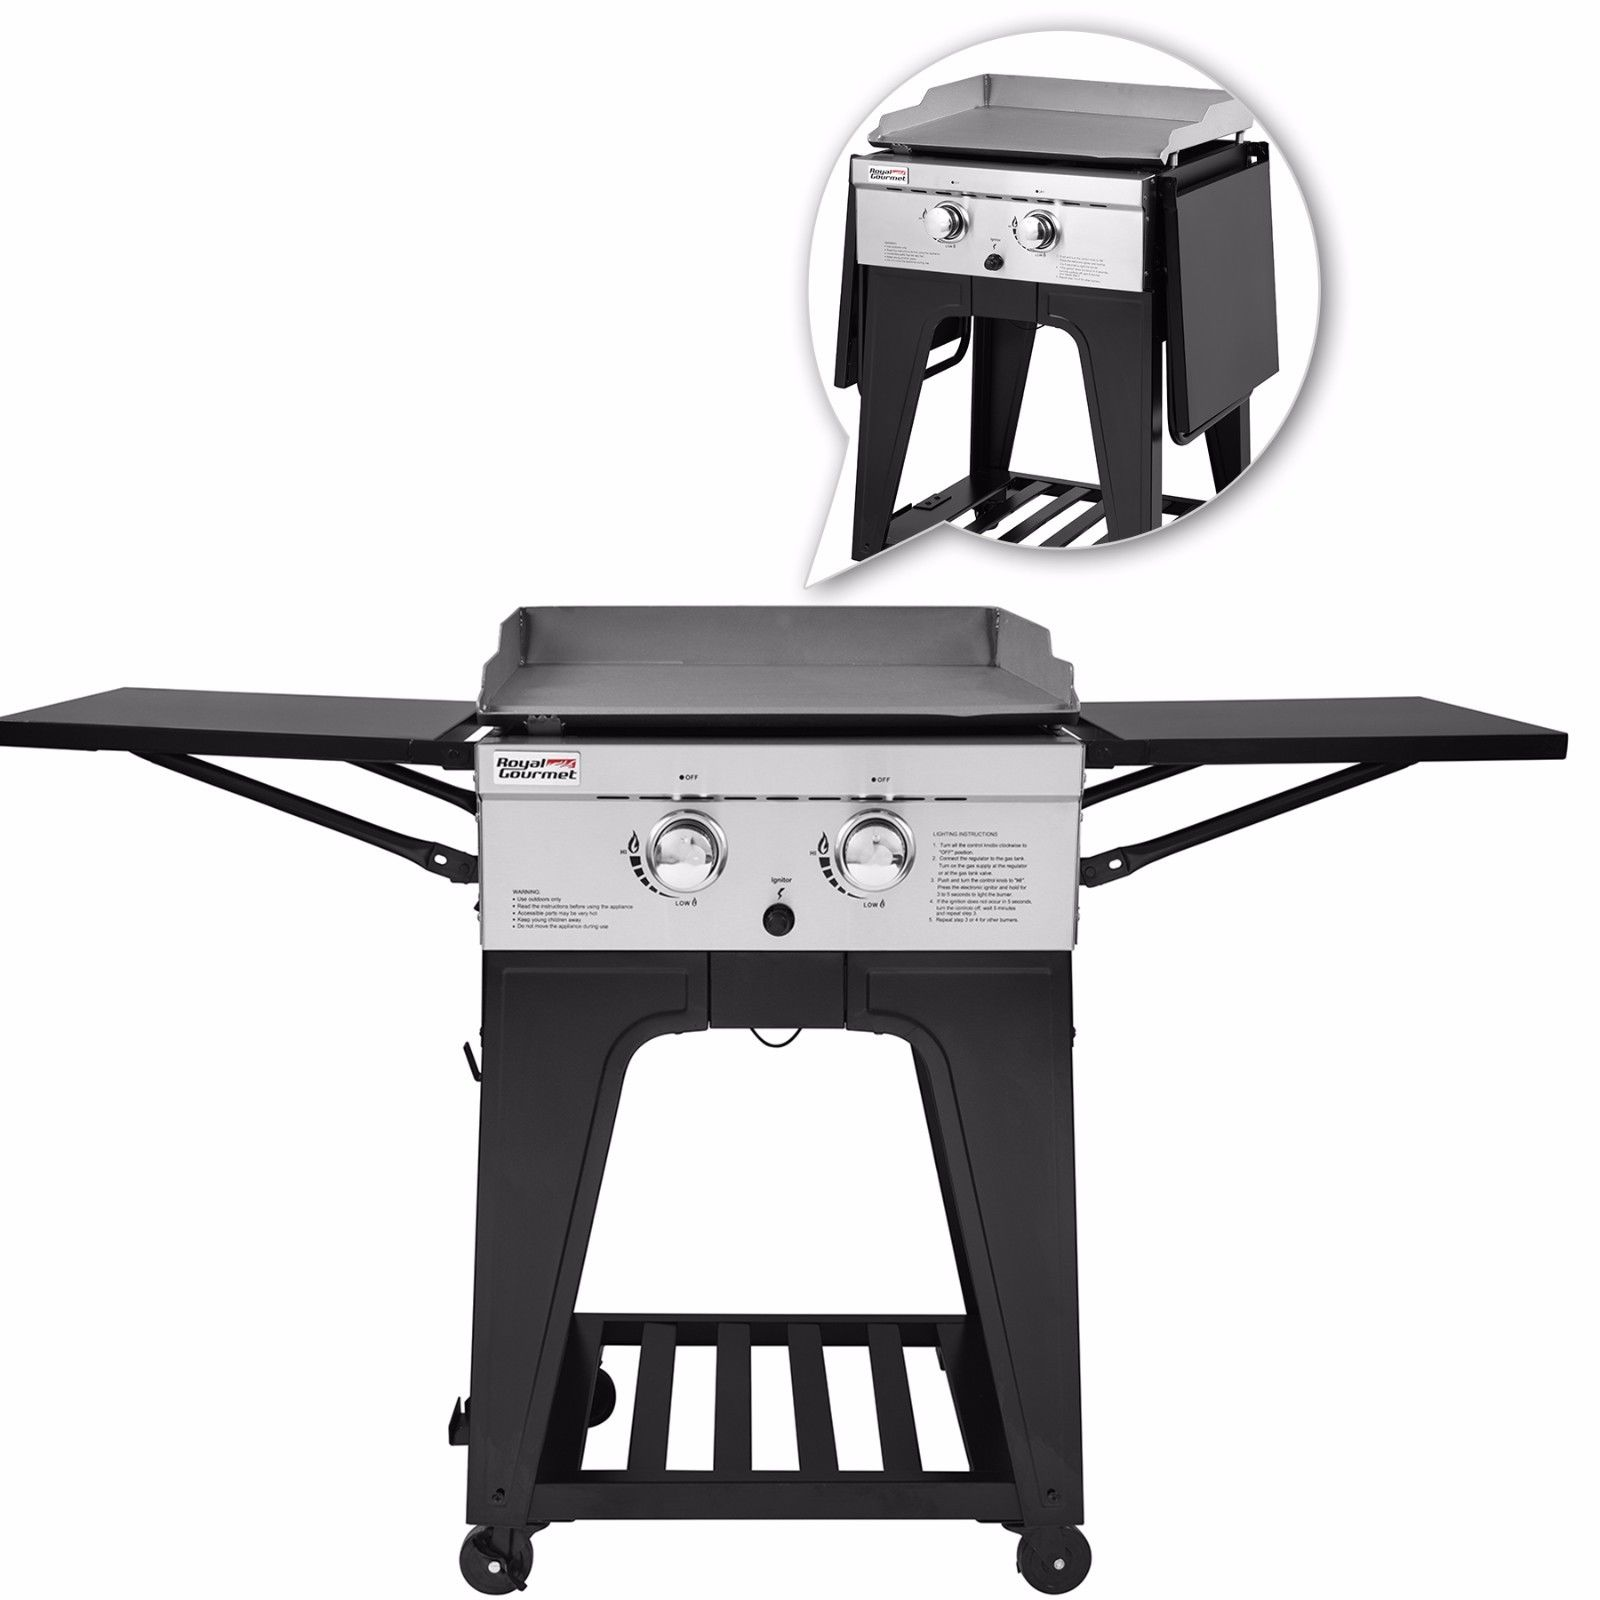 Royal Gourmet GB2000 2-Burner BBQ Gas Propane Grill Griddle